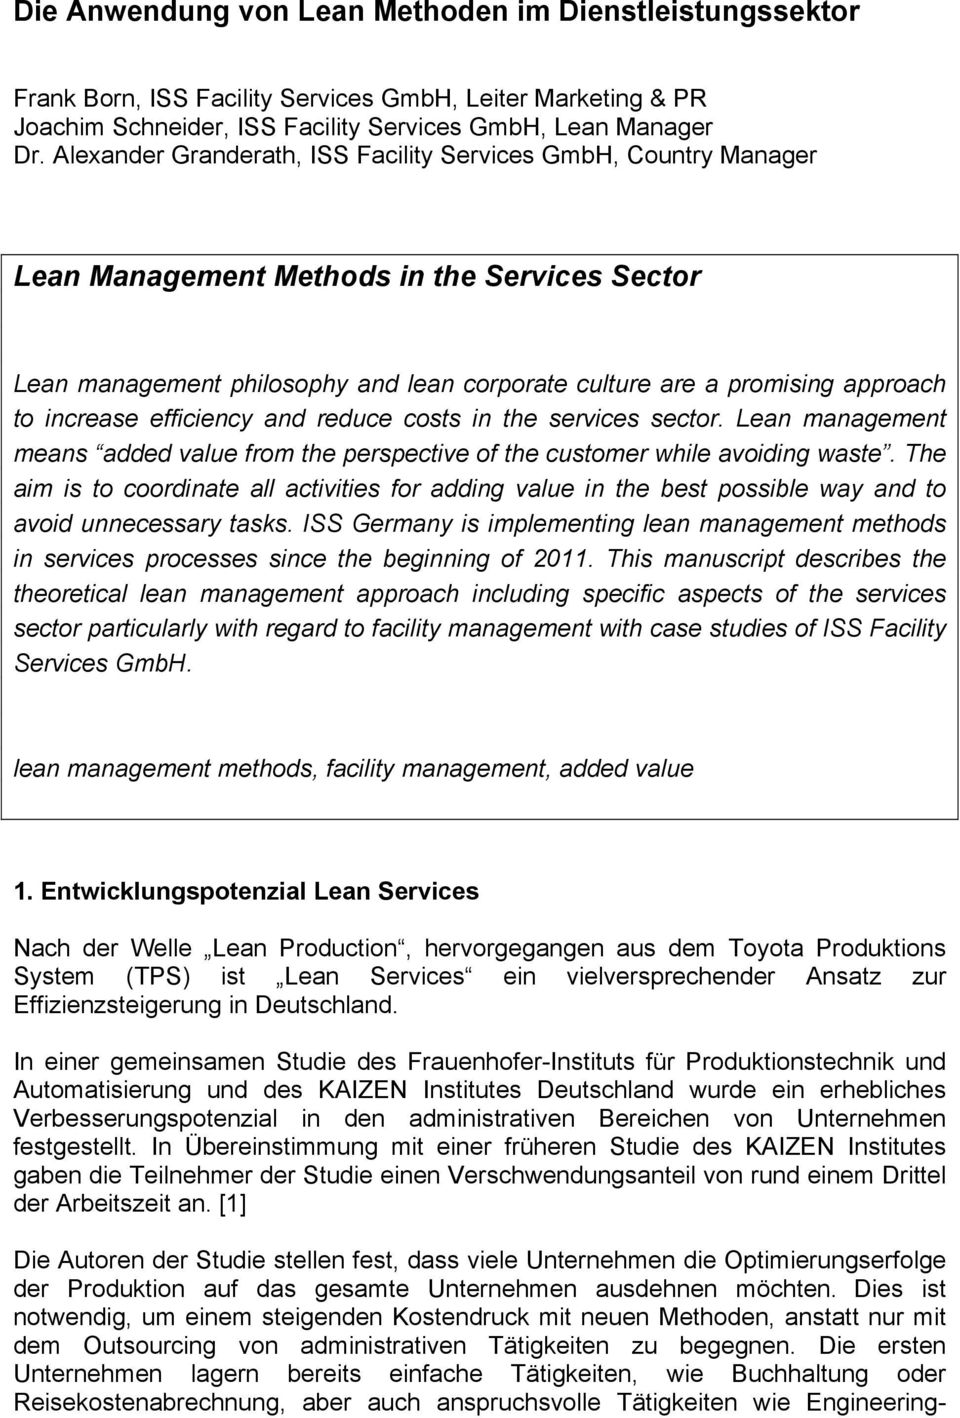 increase efficiency and reduce costs in the services sector. Lean management means added value from the perspective of the customer while avoiding waste.